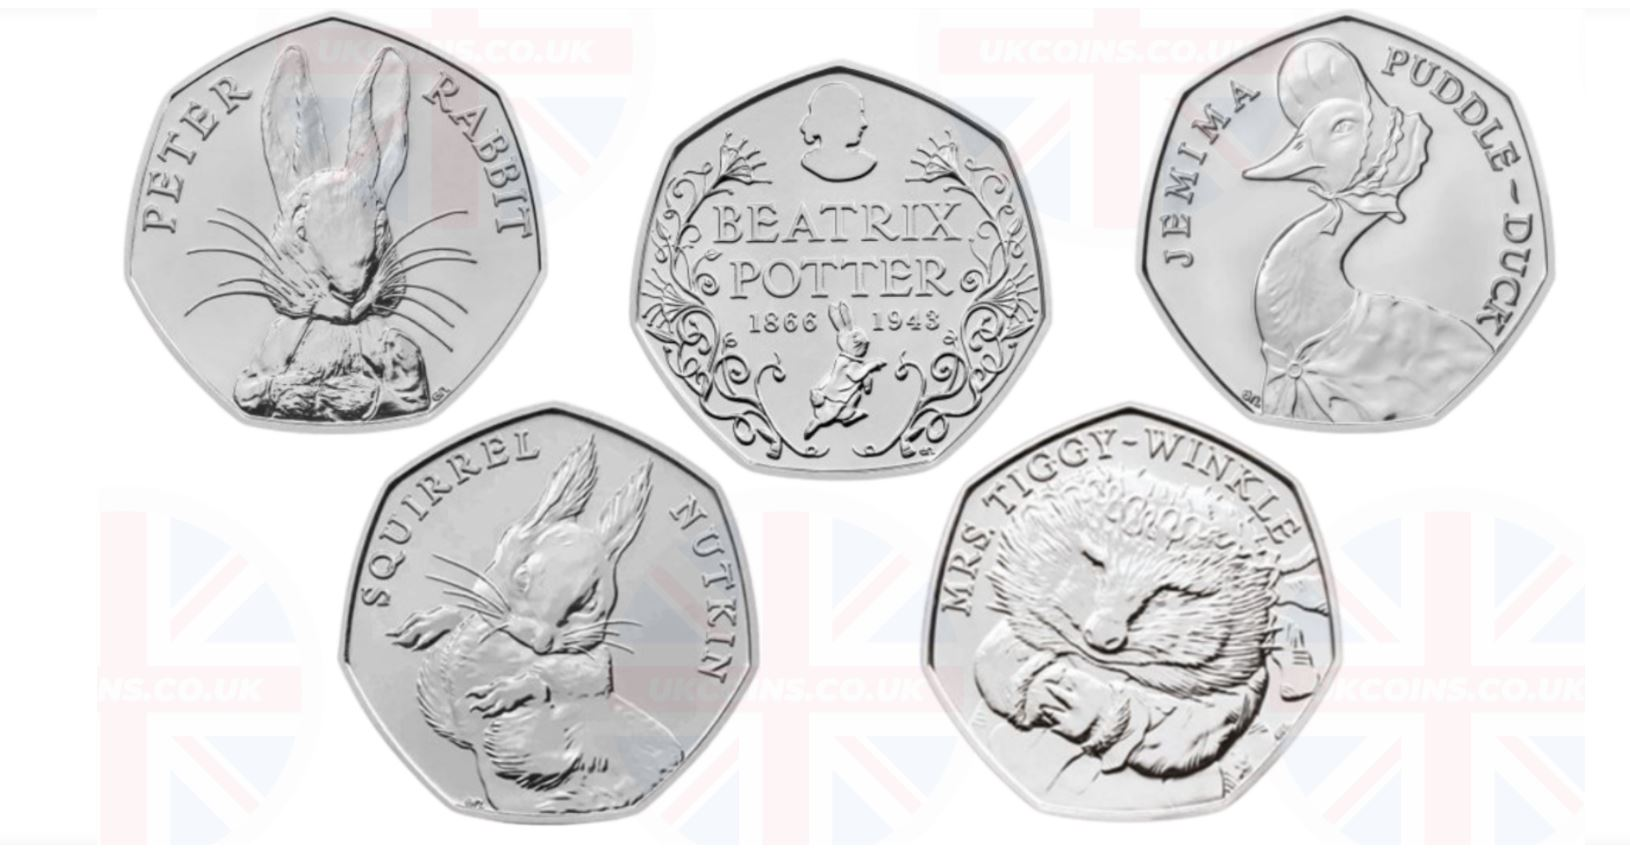 beatrix potter 2016 coin collection